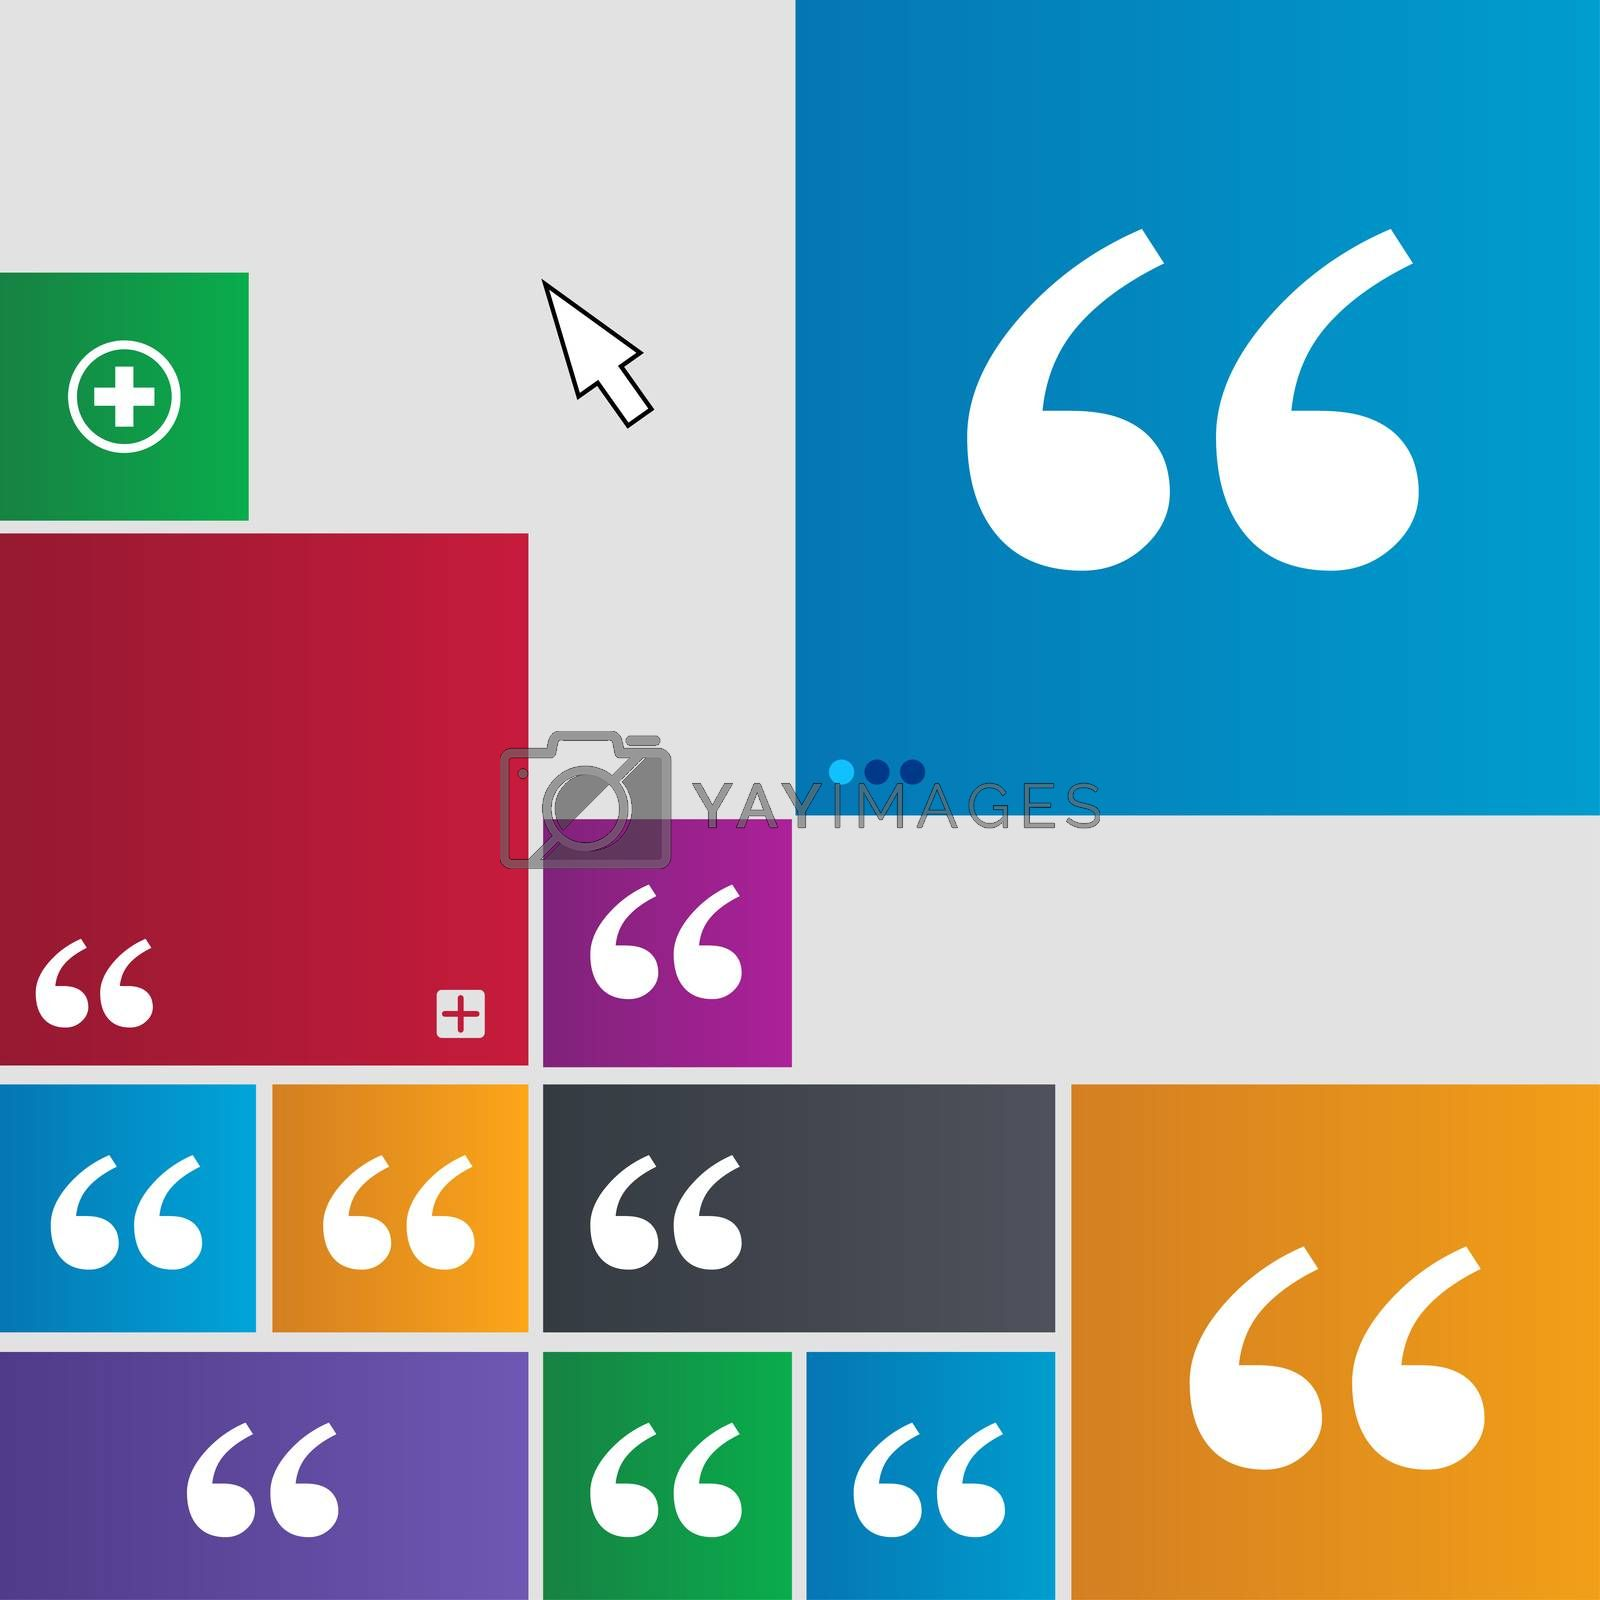 Double quotes at the beginning of words icon sign. Metro style buttons. Modern interface website buttons with cursor pointer.  by Serhii Lohvyniuk